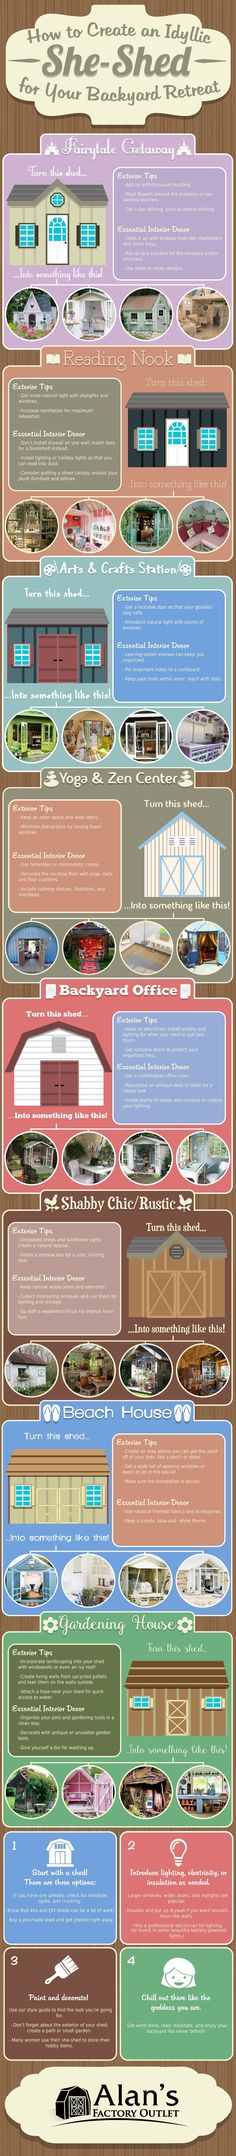 Do you have master plans for taking over your backyard? This guide to creating a she-shed will help you design your very own feminine backyard retreat. She-sheds are in vogue at the moment, with so many cute and gorgeous options to make your outdoor spot a bit more tranquil. Shove aside the power tools and bring in the hammocks! Make over a normal shed and build your own DIY she-shed with these tips. These are some of the current she-shed styles out there, so go with the fashion or create…